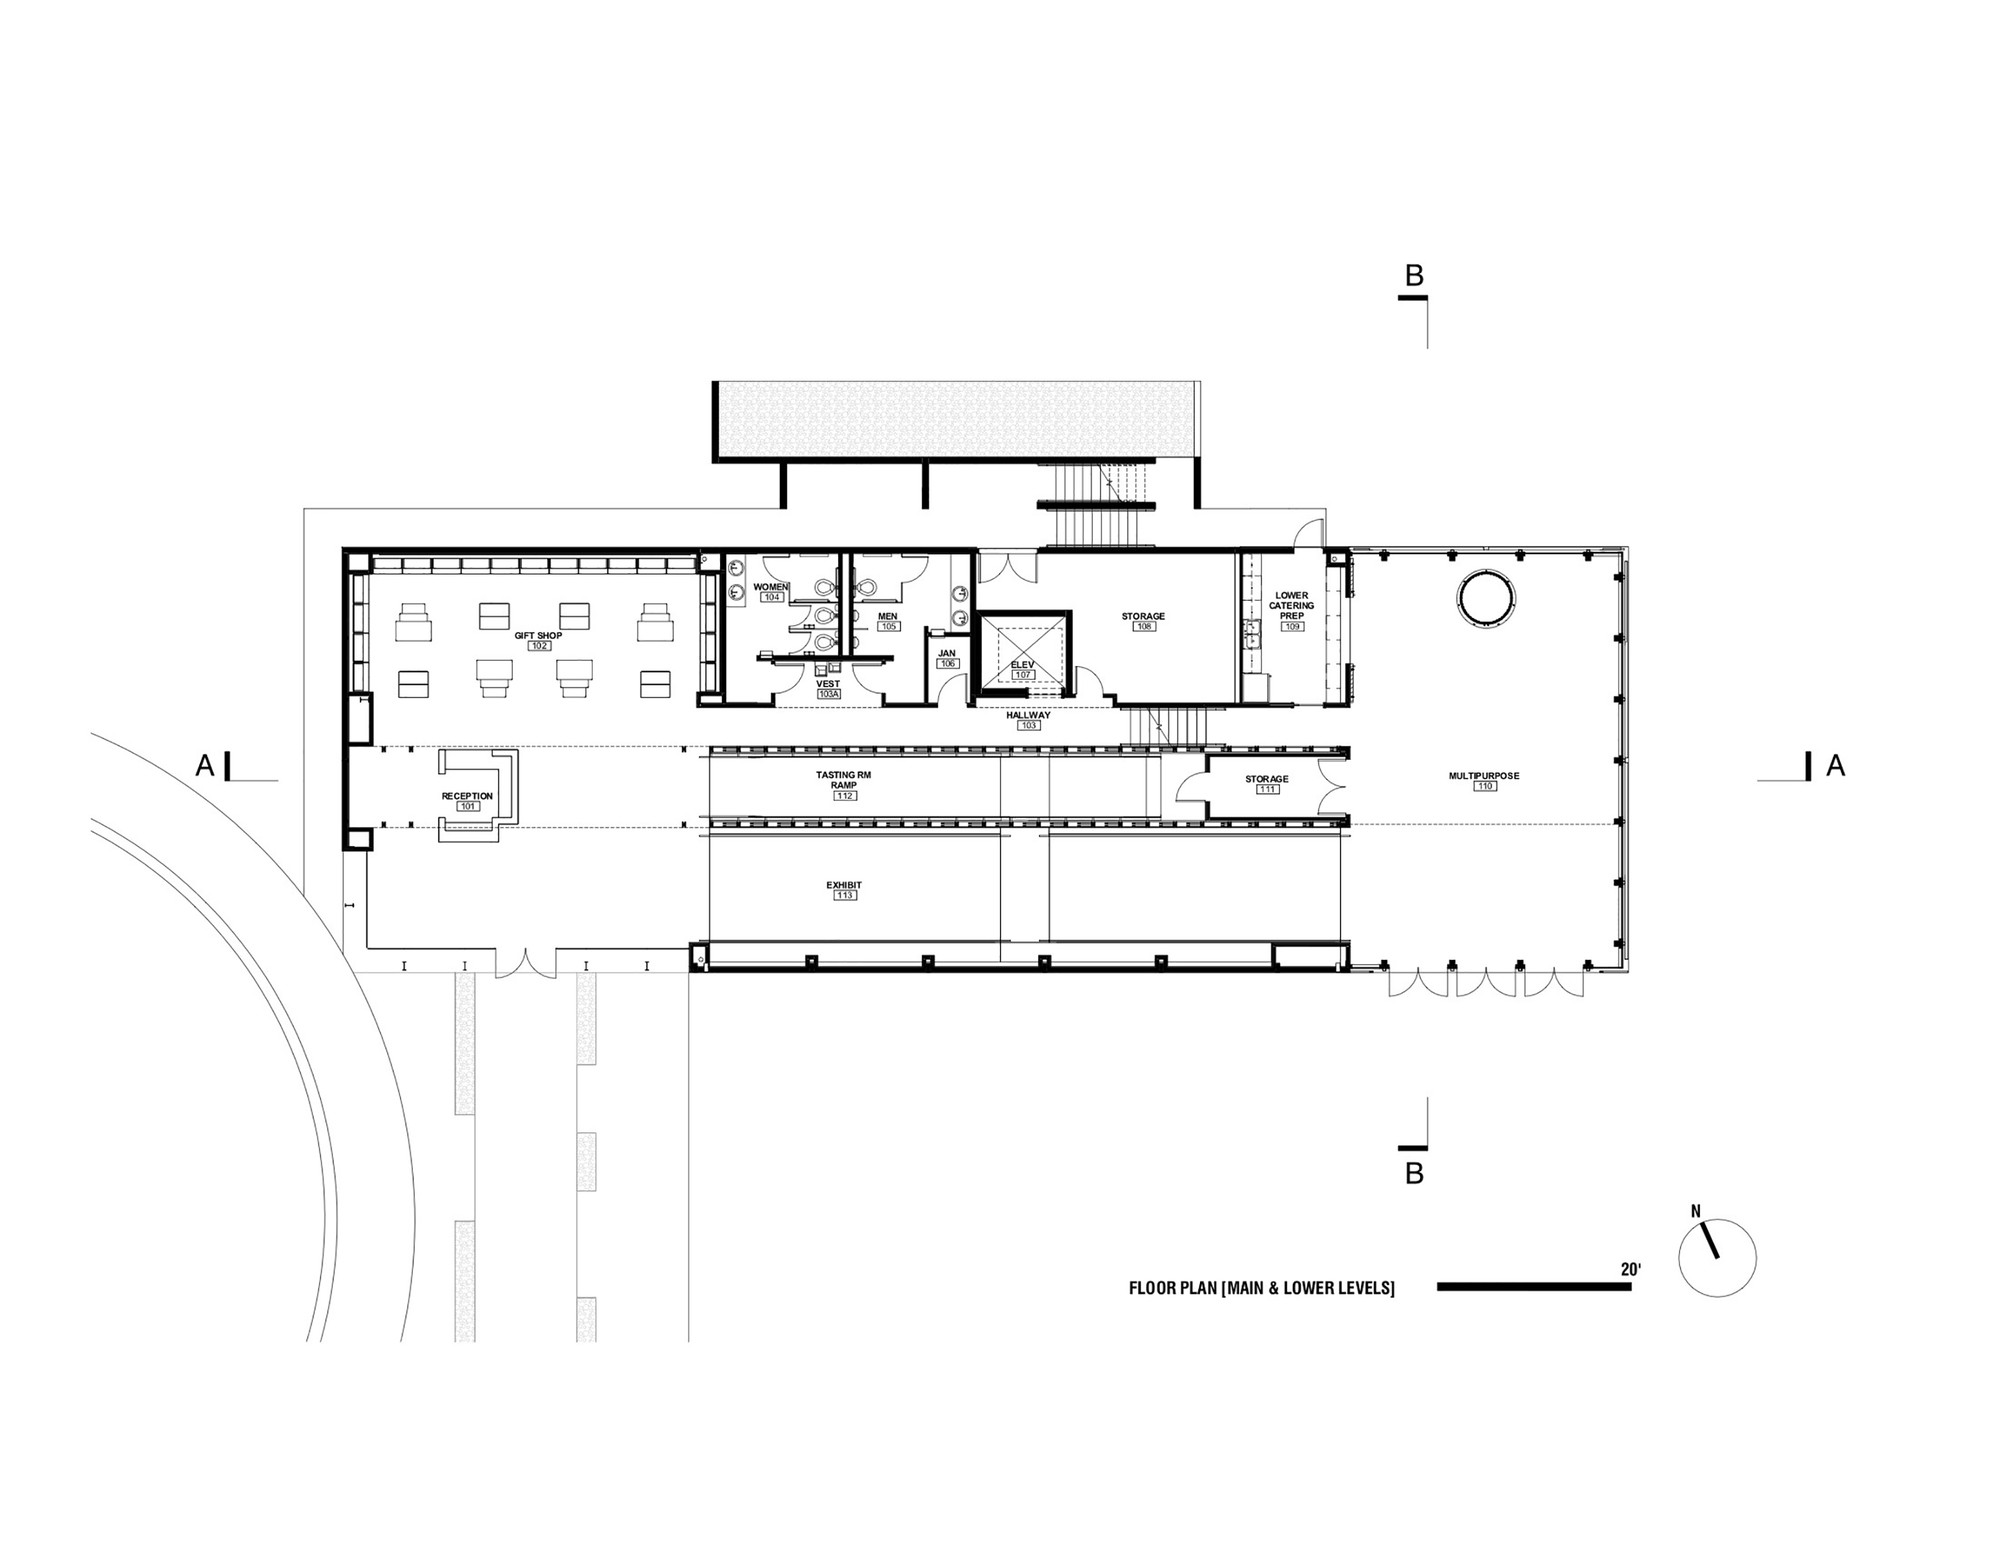 Workshop Floor Plans Gallery Of Wild Turkey Bourbon Visitor Center De Leon